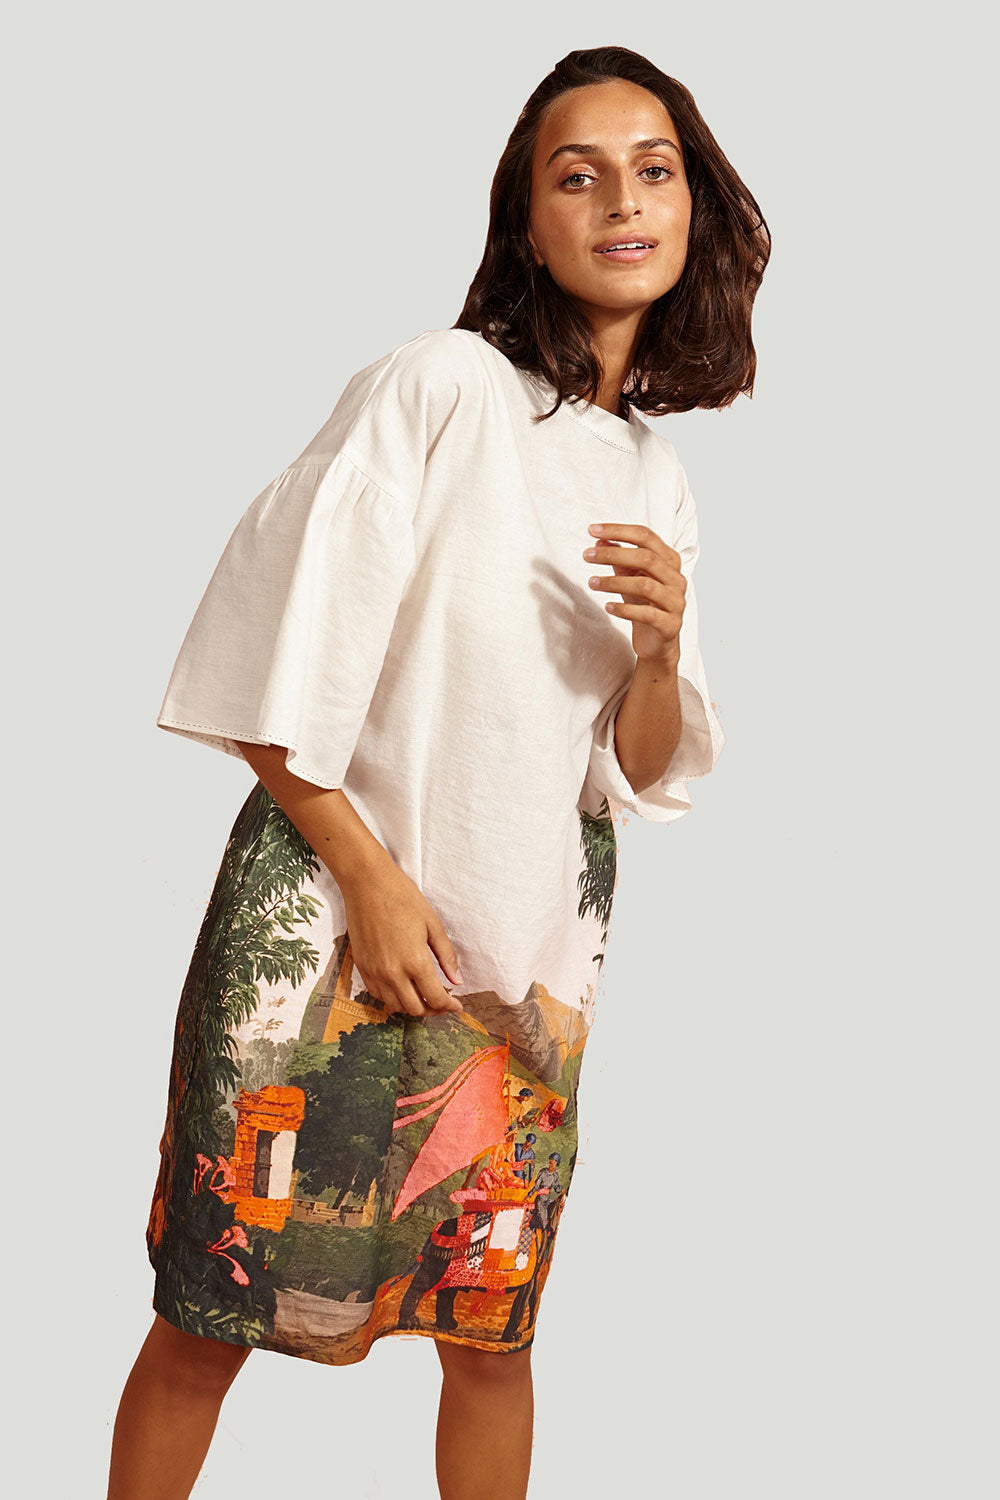 BINNY - The Spice Route Linen Dress online at PAYA boutique